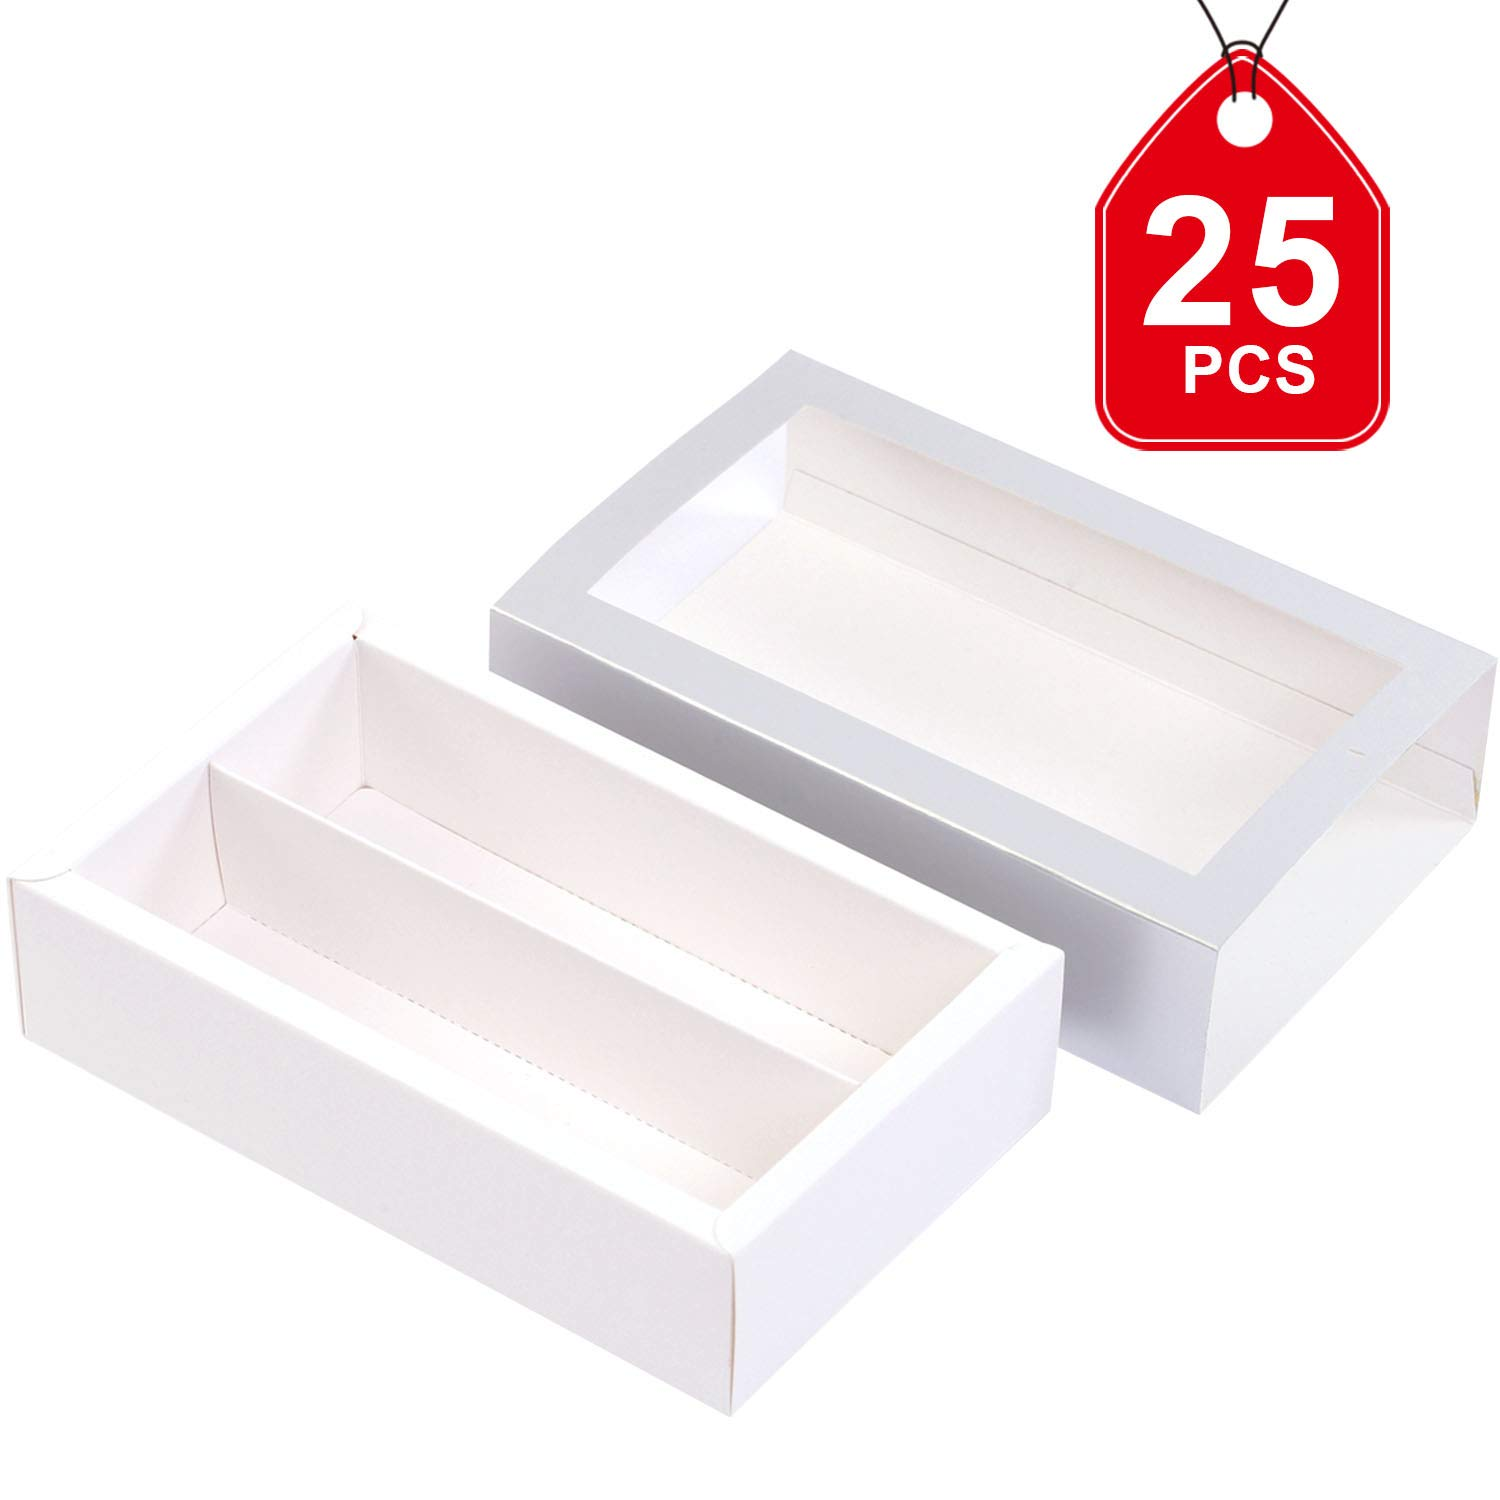 Macaron Boxes for 12 Macarons (Pack of 25) BAKIPACK SILVER Macaron Boxes Macarons Box with Clear Window (without Macaron inside)